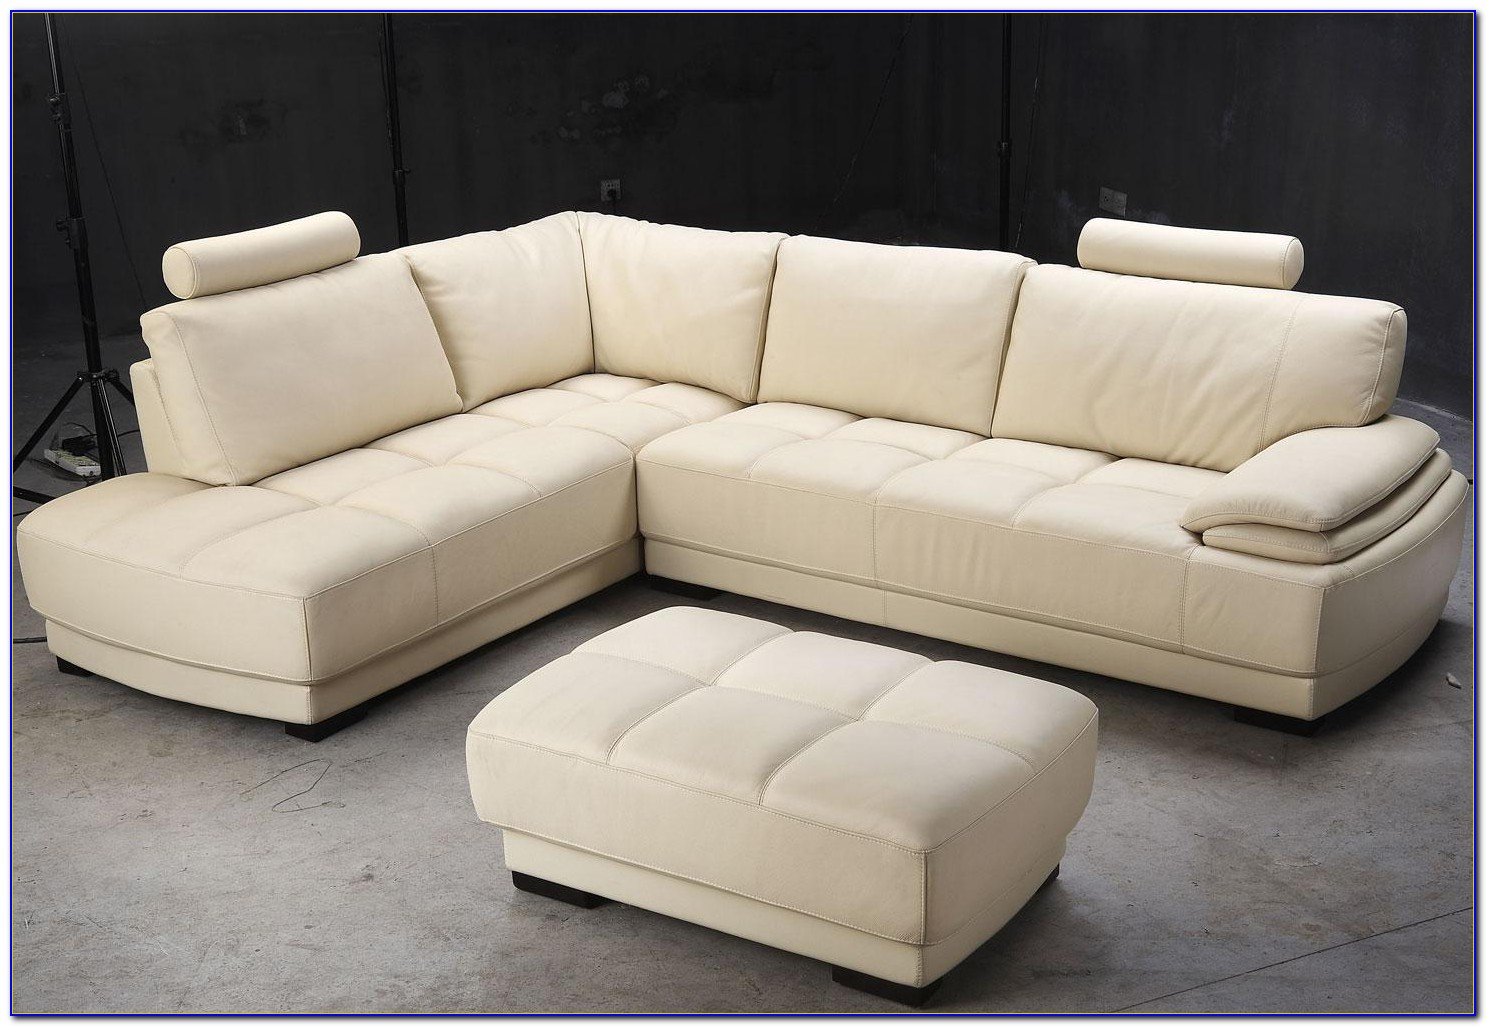 Sectional Sofa With Ottoman Microfiber